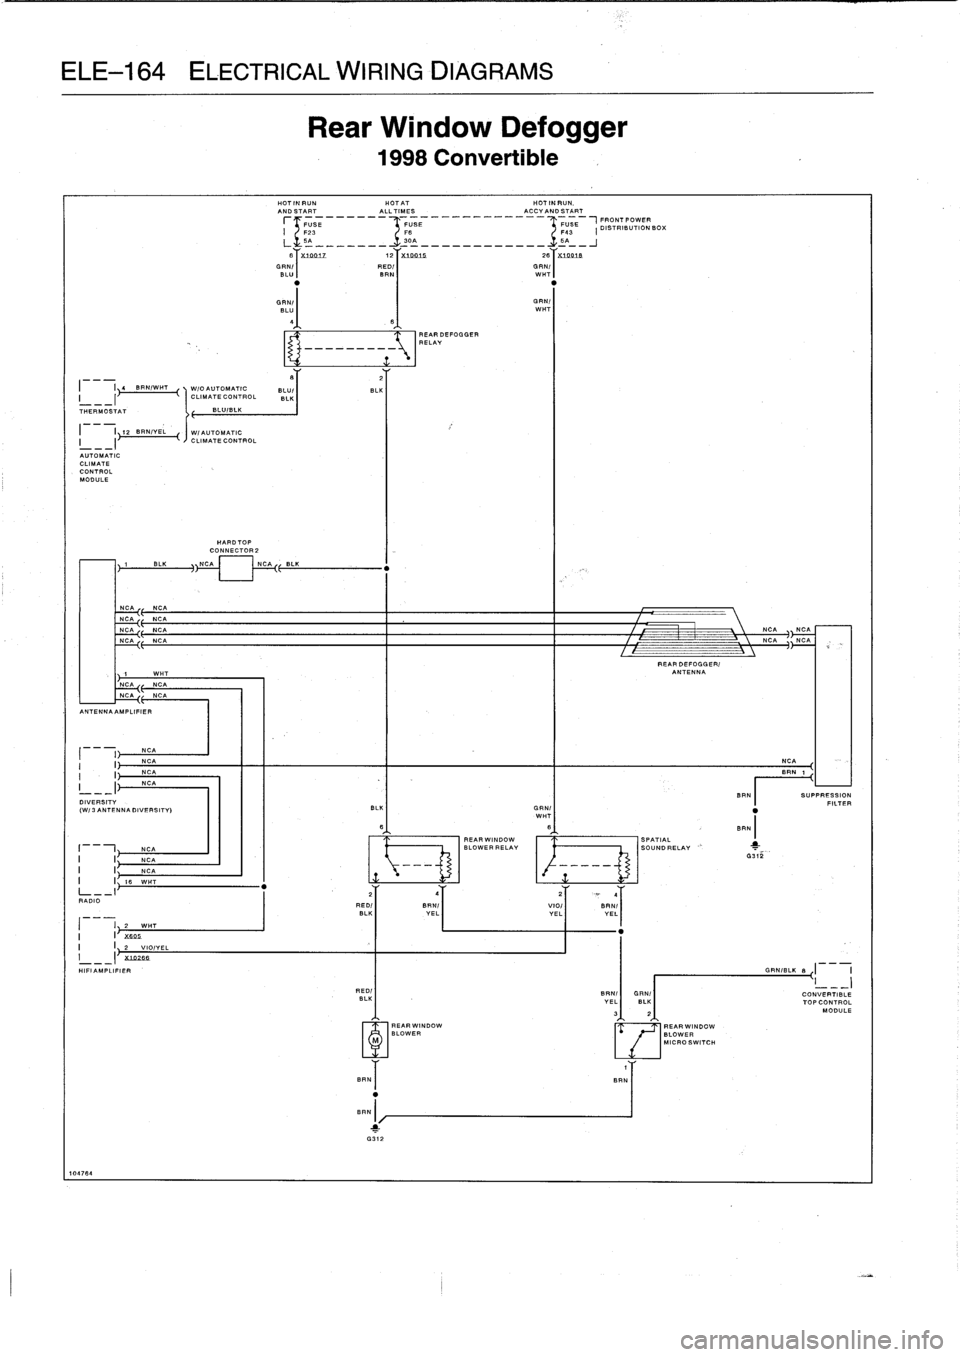 w960_2800 646 bmw m3 1992 e36 workshop manual BMW Stereo Wiring Diagram at virtualis.co